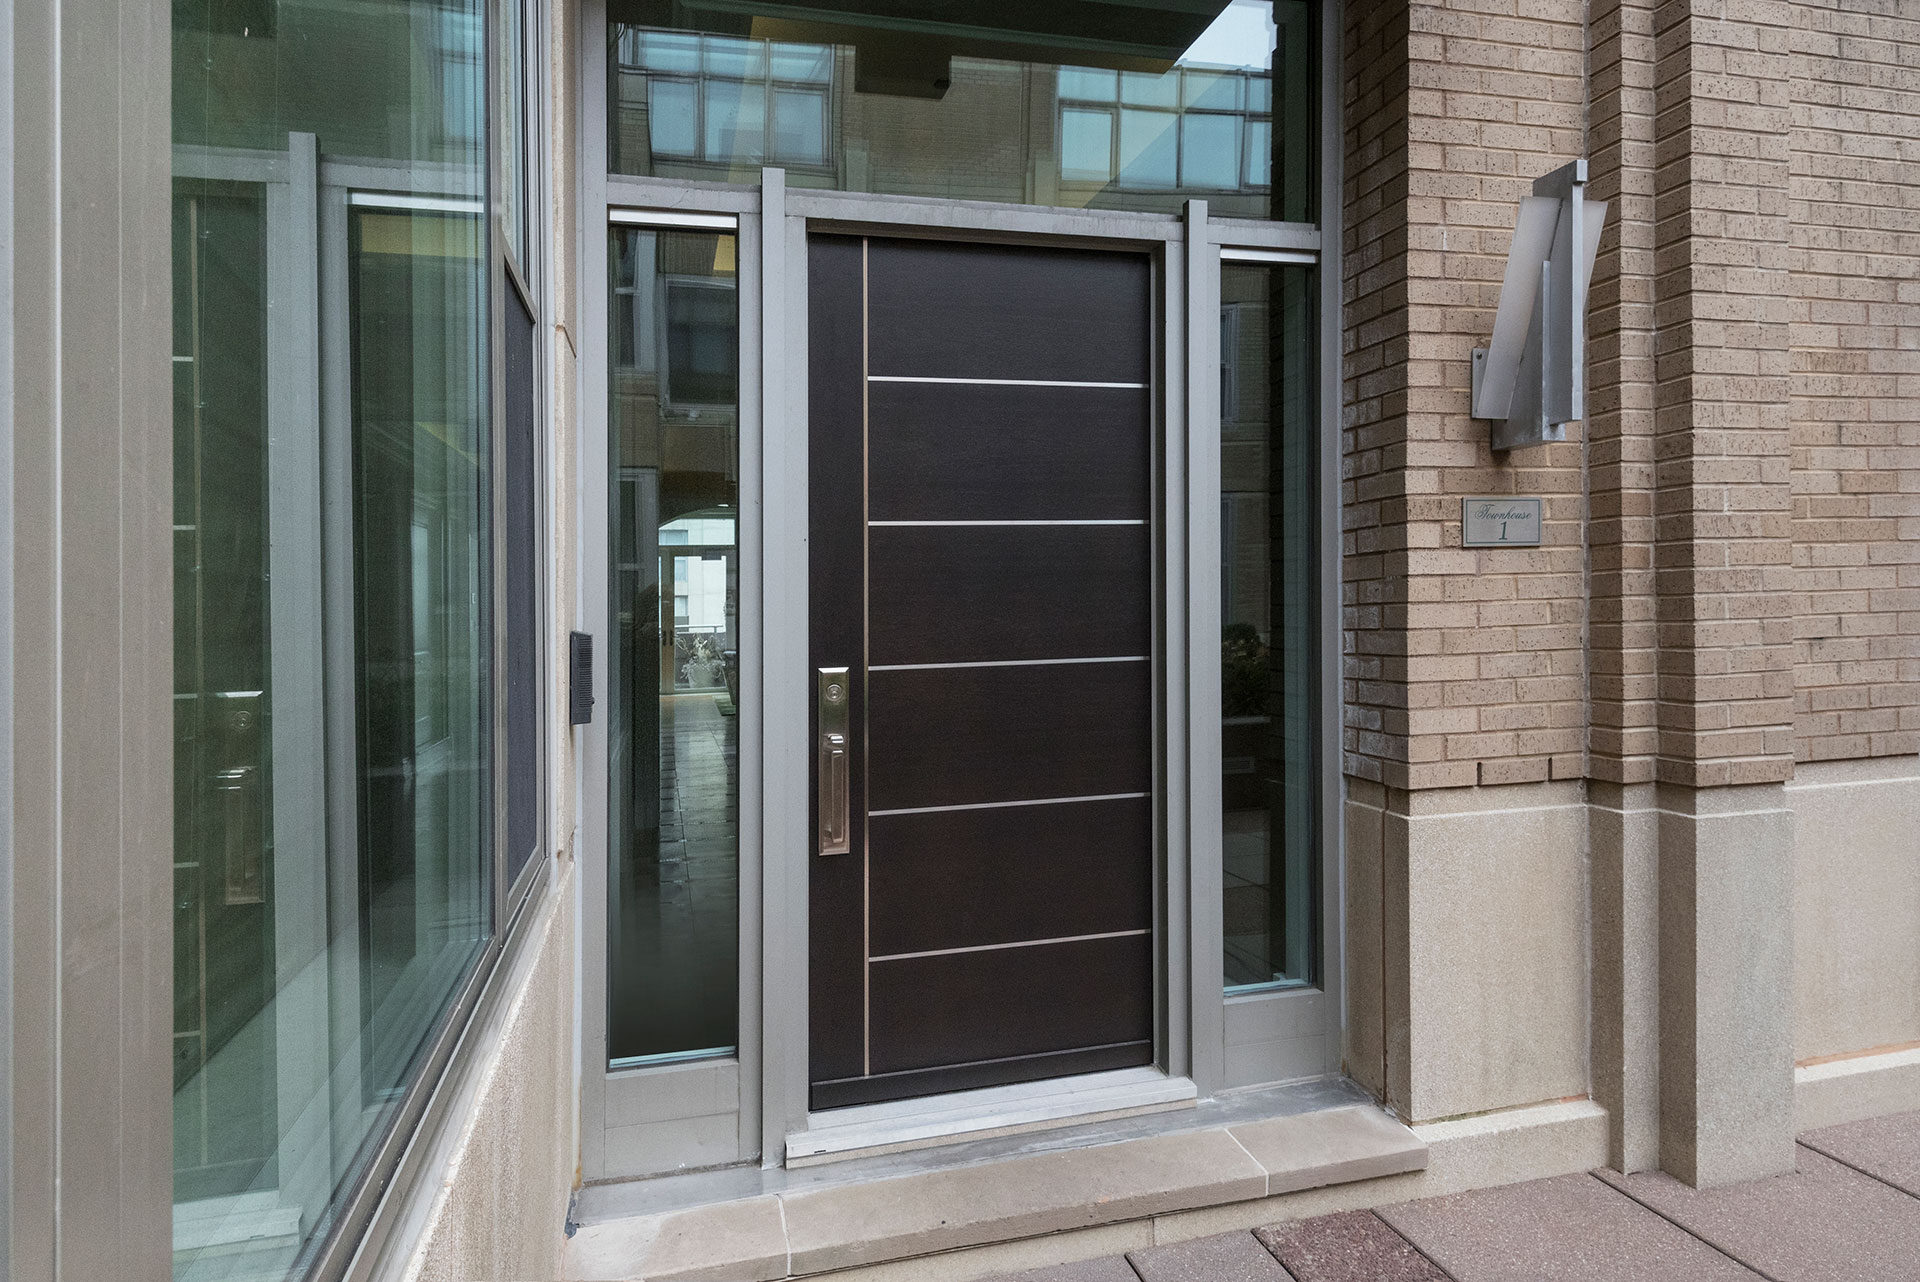 Latest Wooden Door Designs 2017 Front Doors Of Exclusive Chicago Townhouses Rescued By